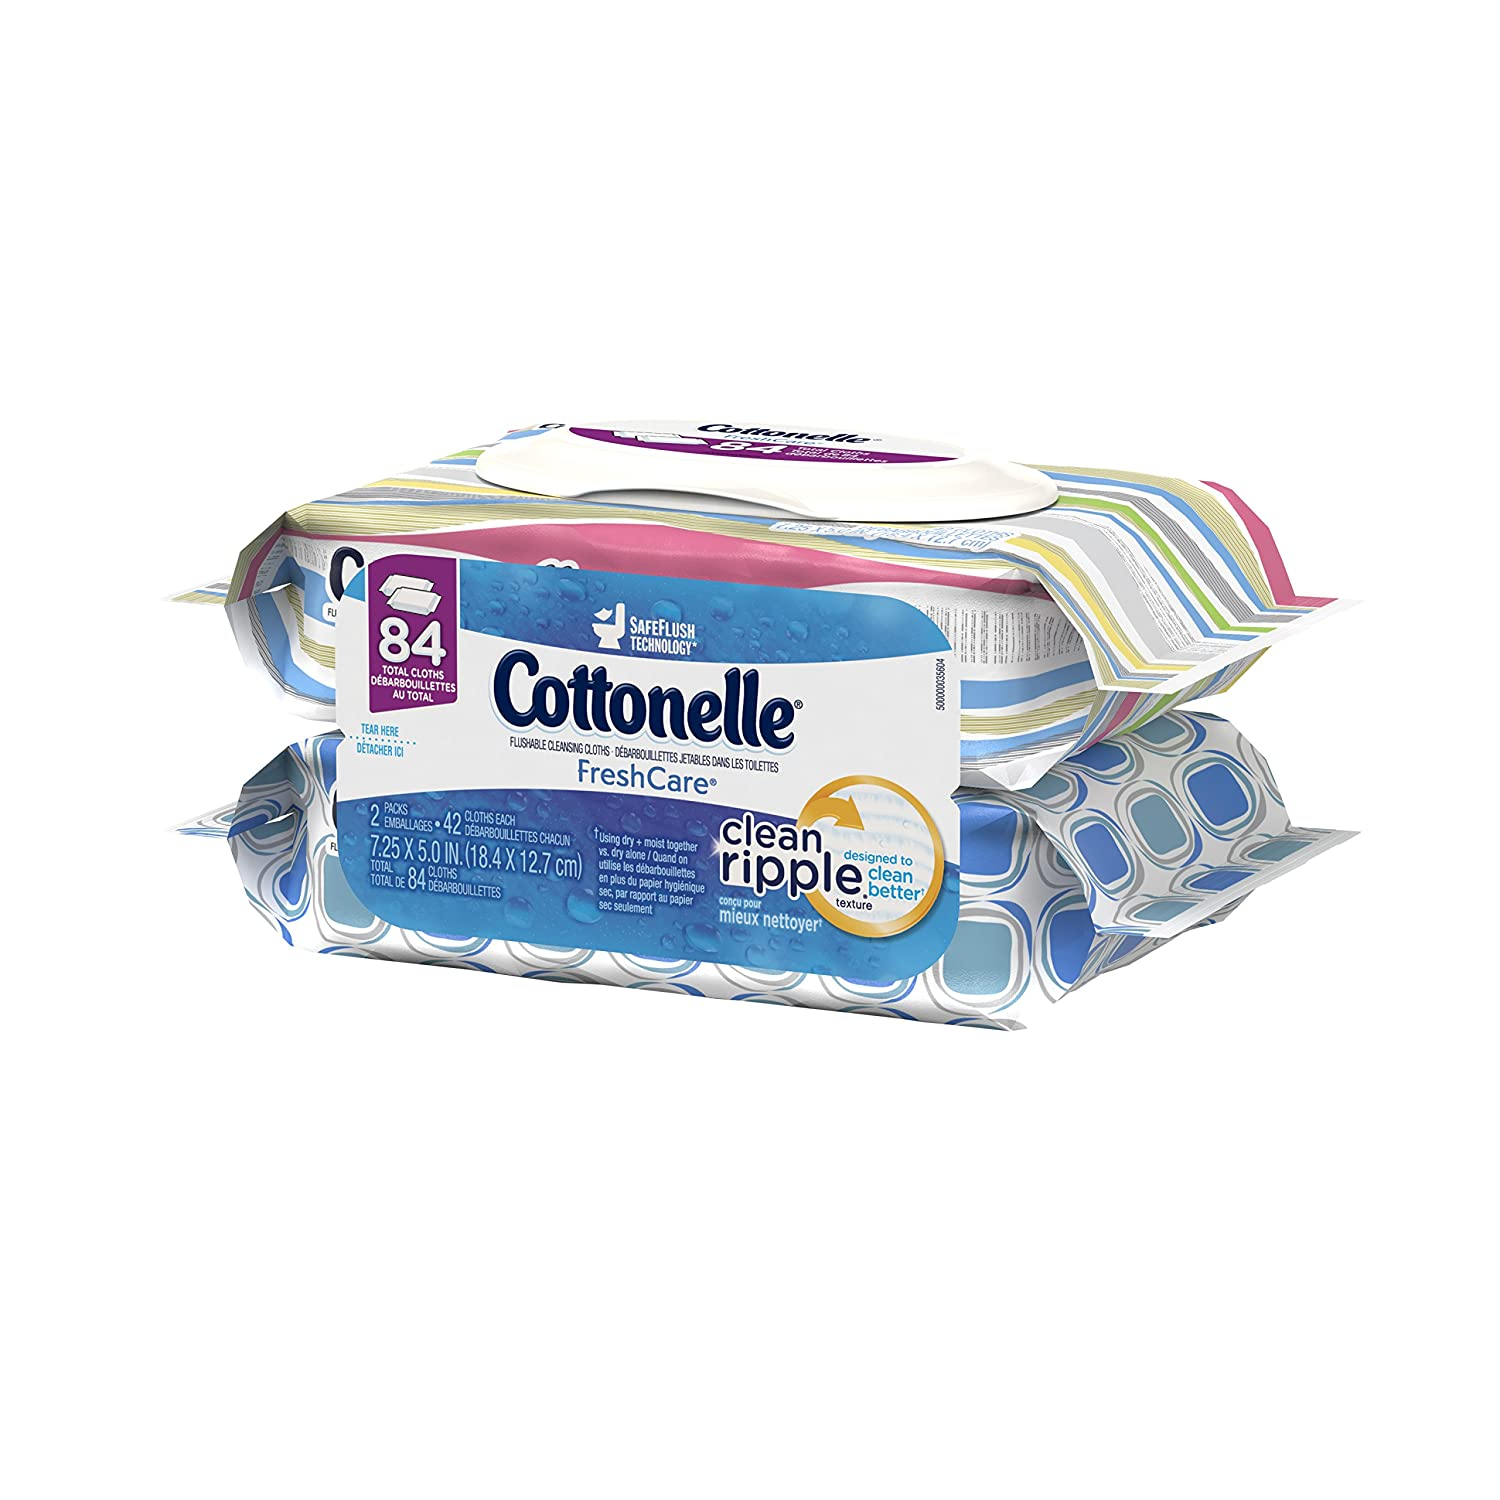 $5.21 (was $10.98) Cottonelle FreshCare Flushable Cleansing Cloths Refill, 84 Count (2 Packs of 42 Cloths)